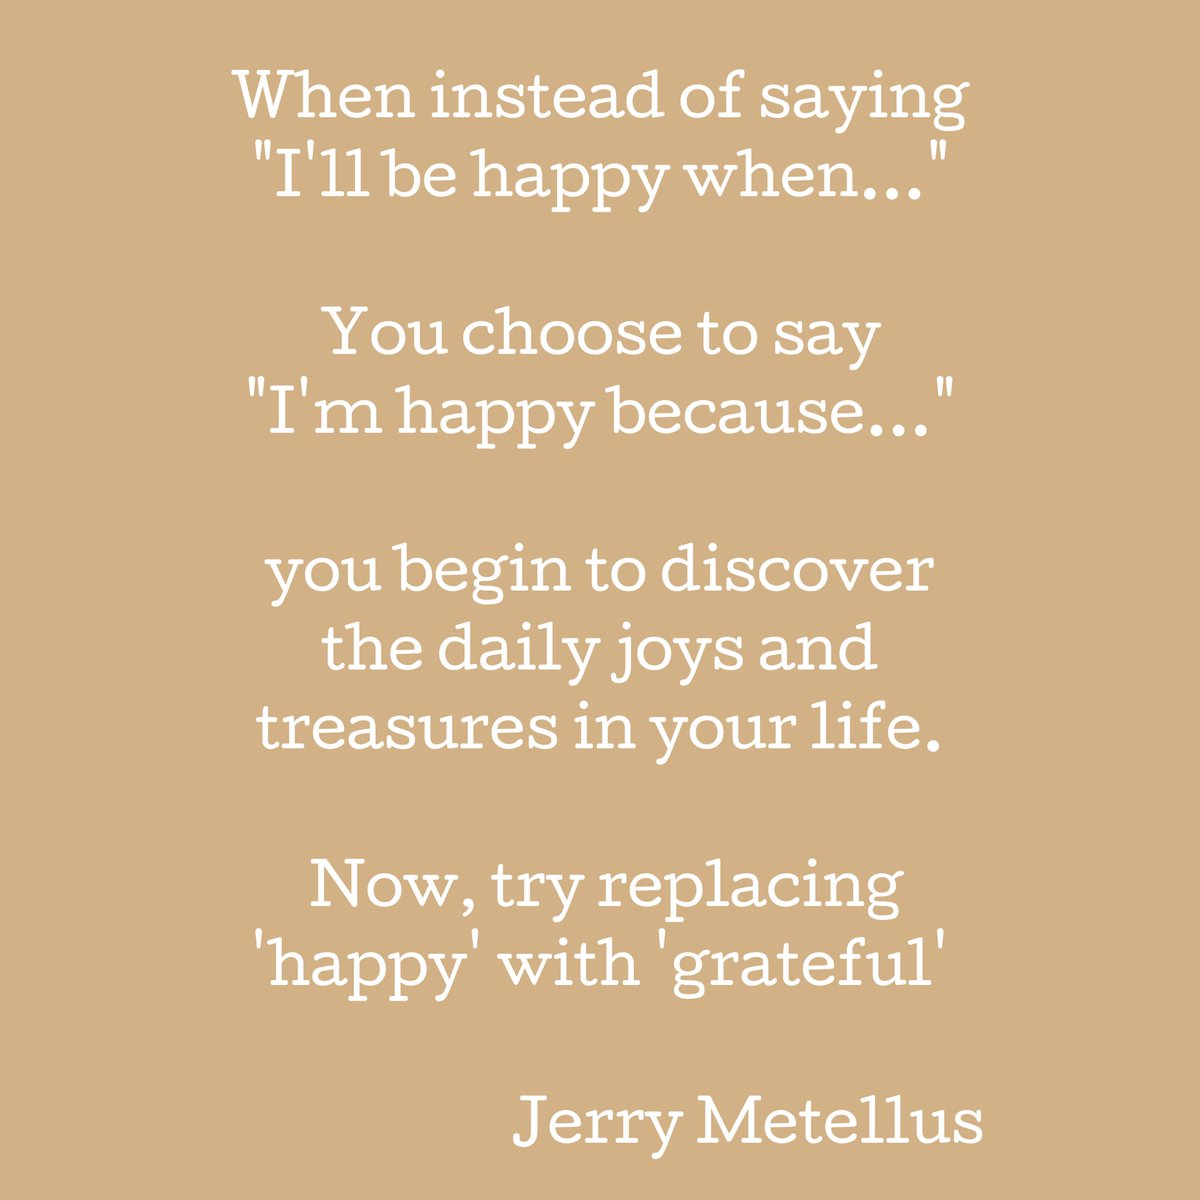 We rarely, if ever, know what the future holds. What we have for sure is the NOW! Have you decided what to do with and about your new NOW?    #quoteoftheday #inspiration #peace #motivational #wordsofwisdom #stayhome #vegas #vegasstrong #jerrymettellus #quoteoftheday #weareonepic.twitter.com/dULwNK09Ek